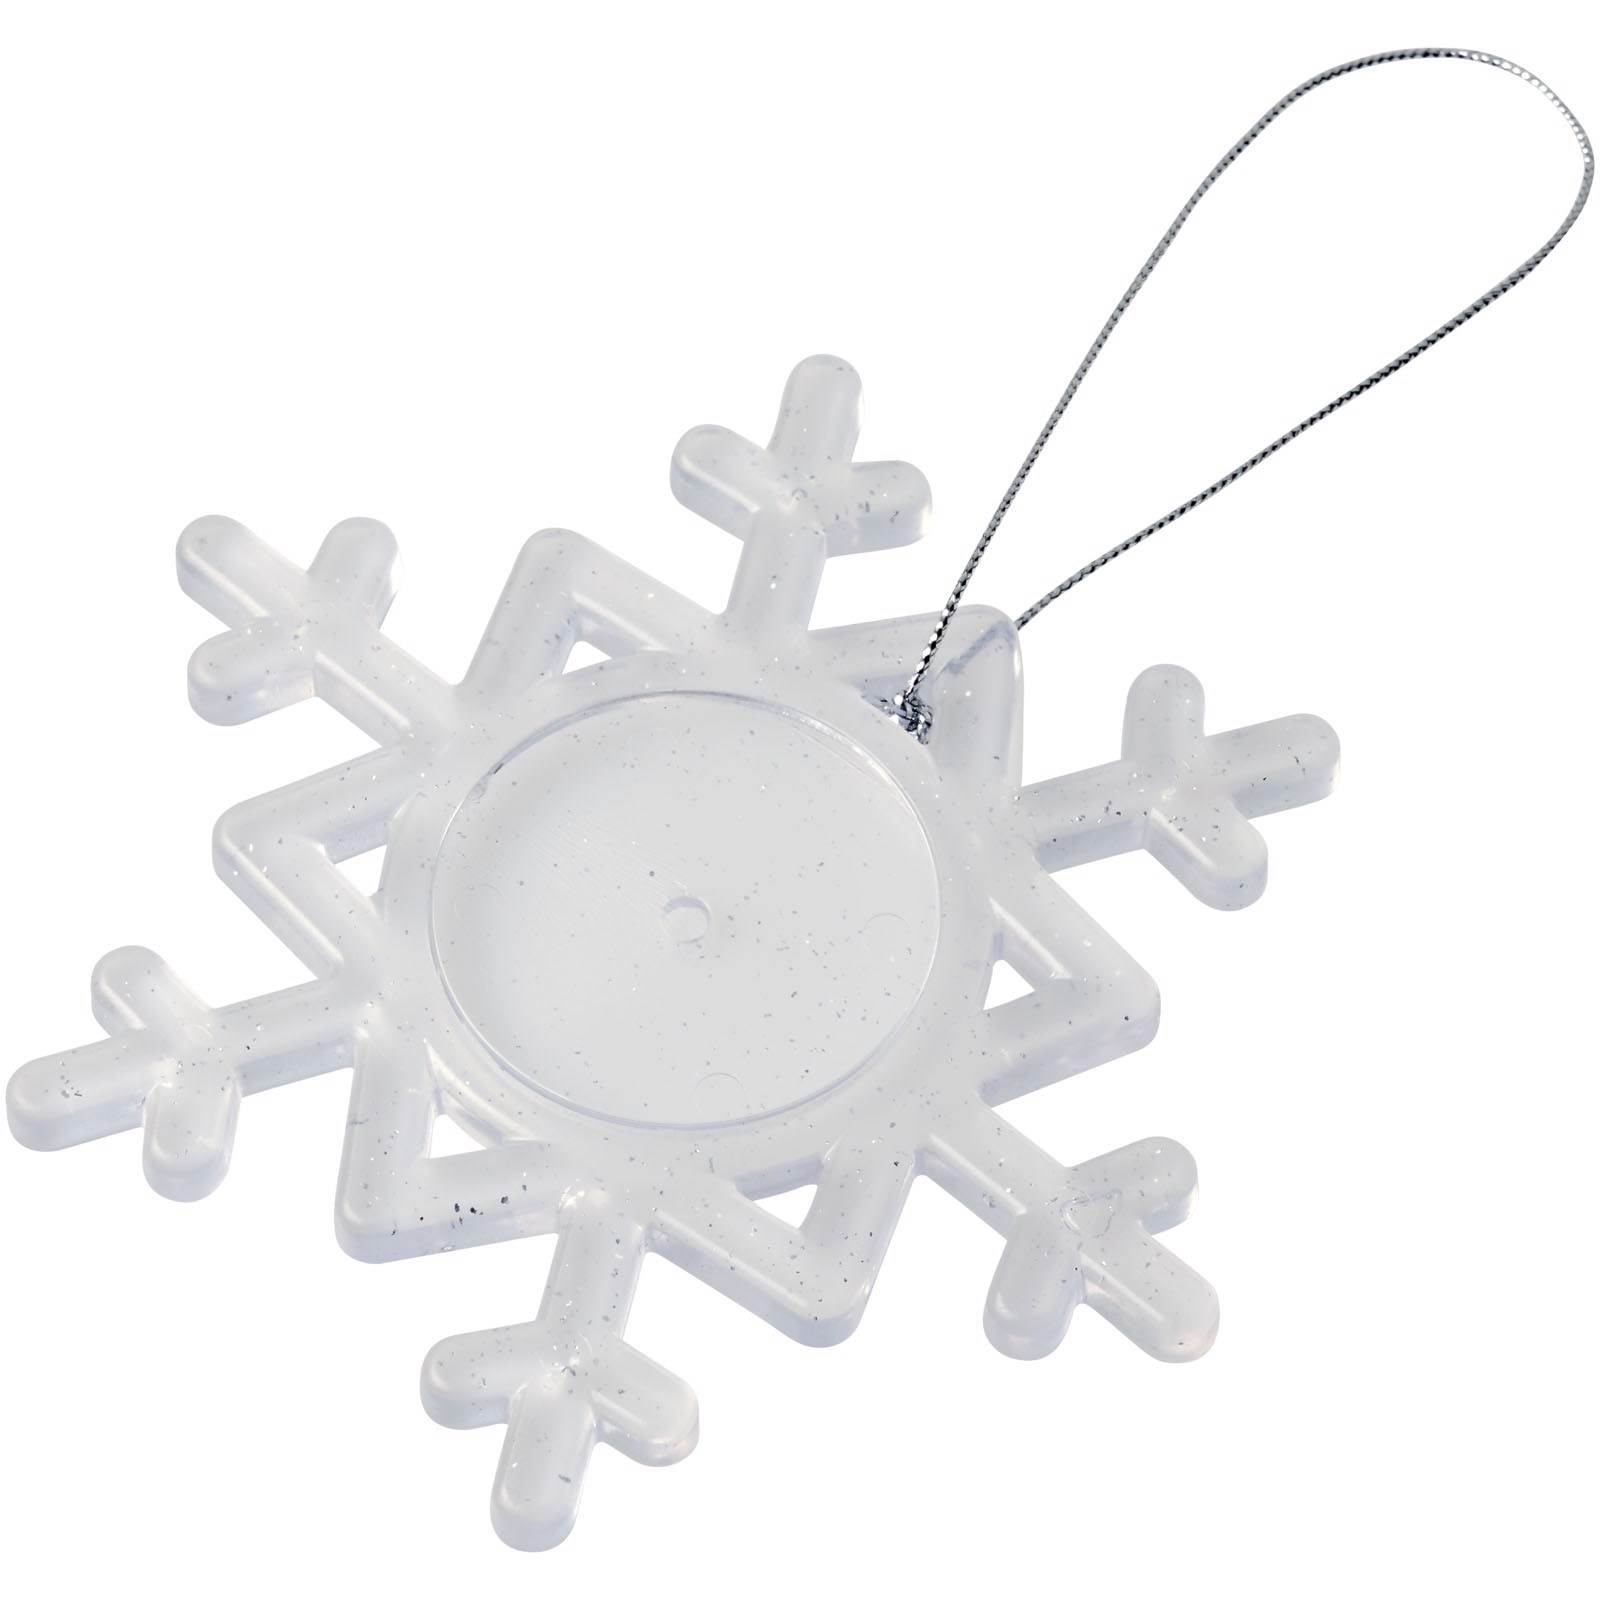 Elssa snowflake ornament - Frosted clear / White